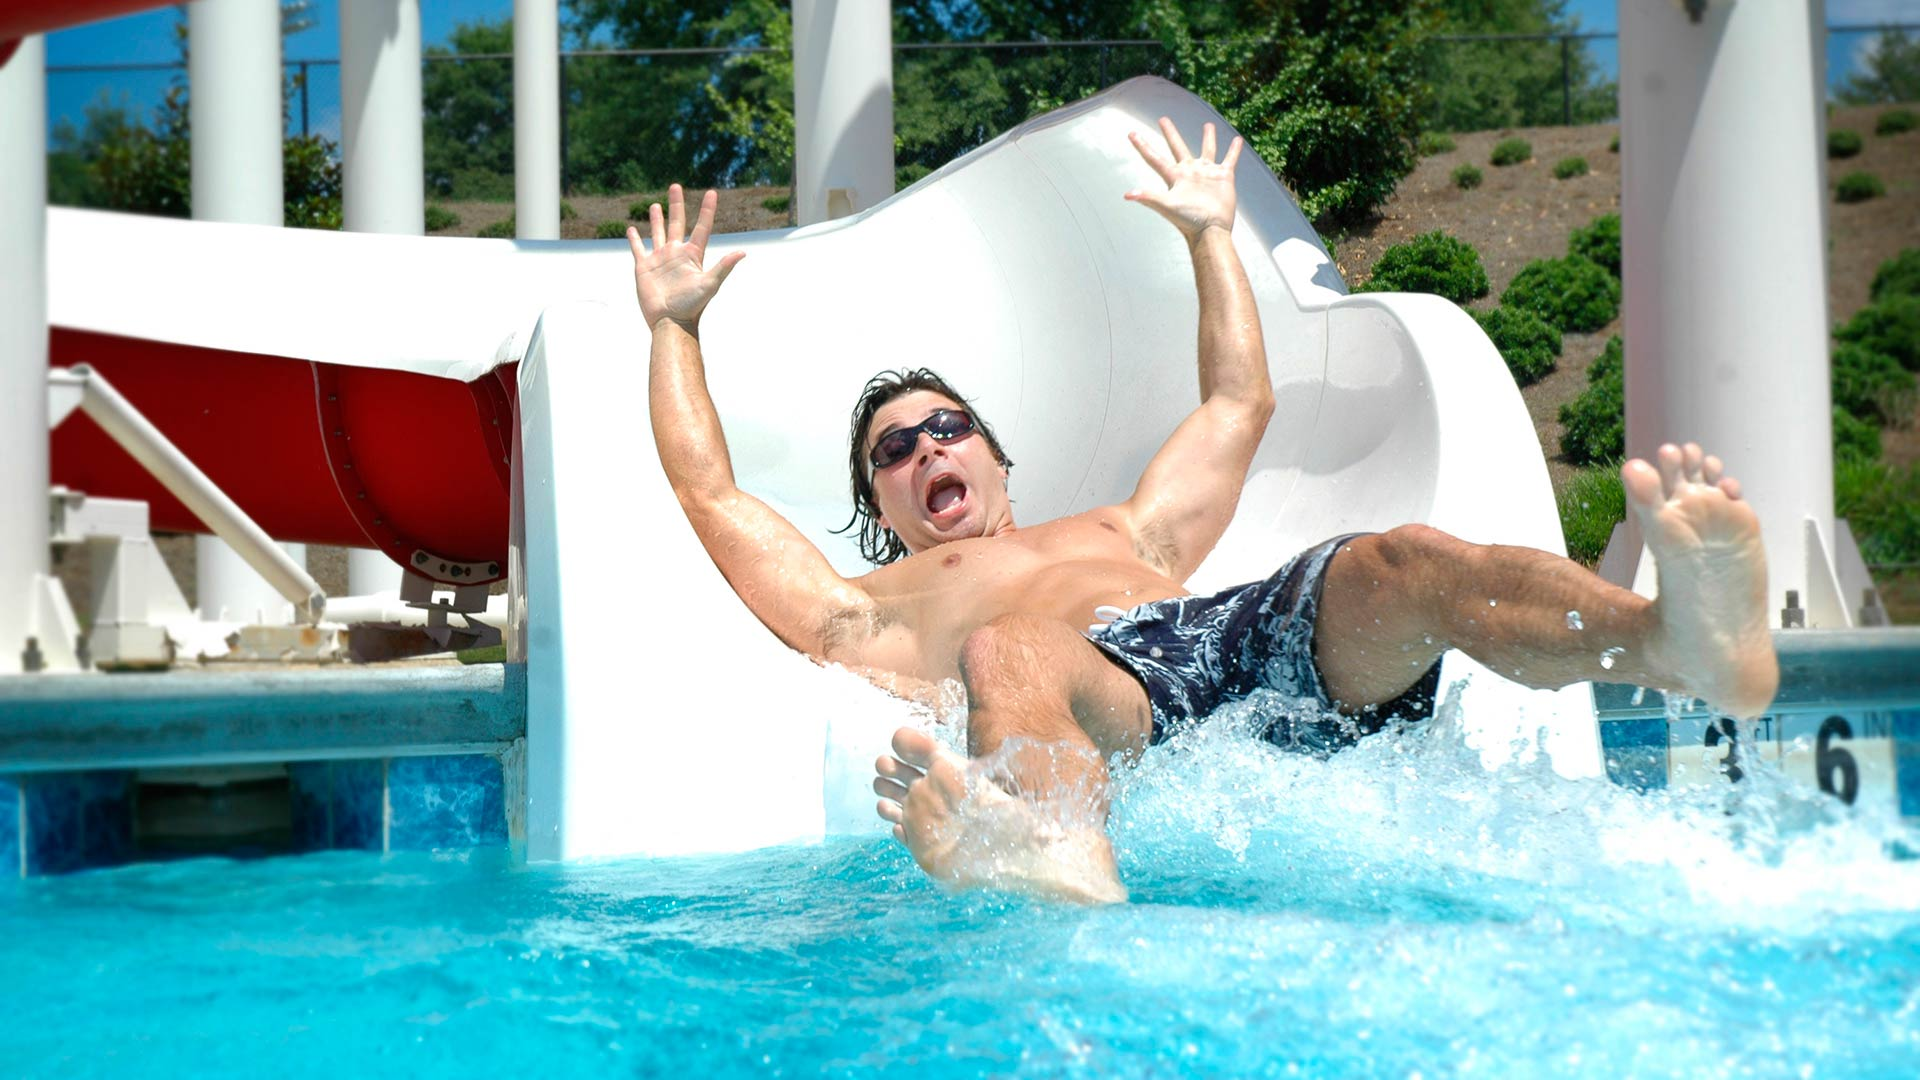 A student going down a water slide